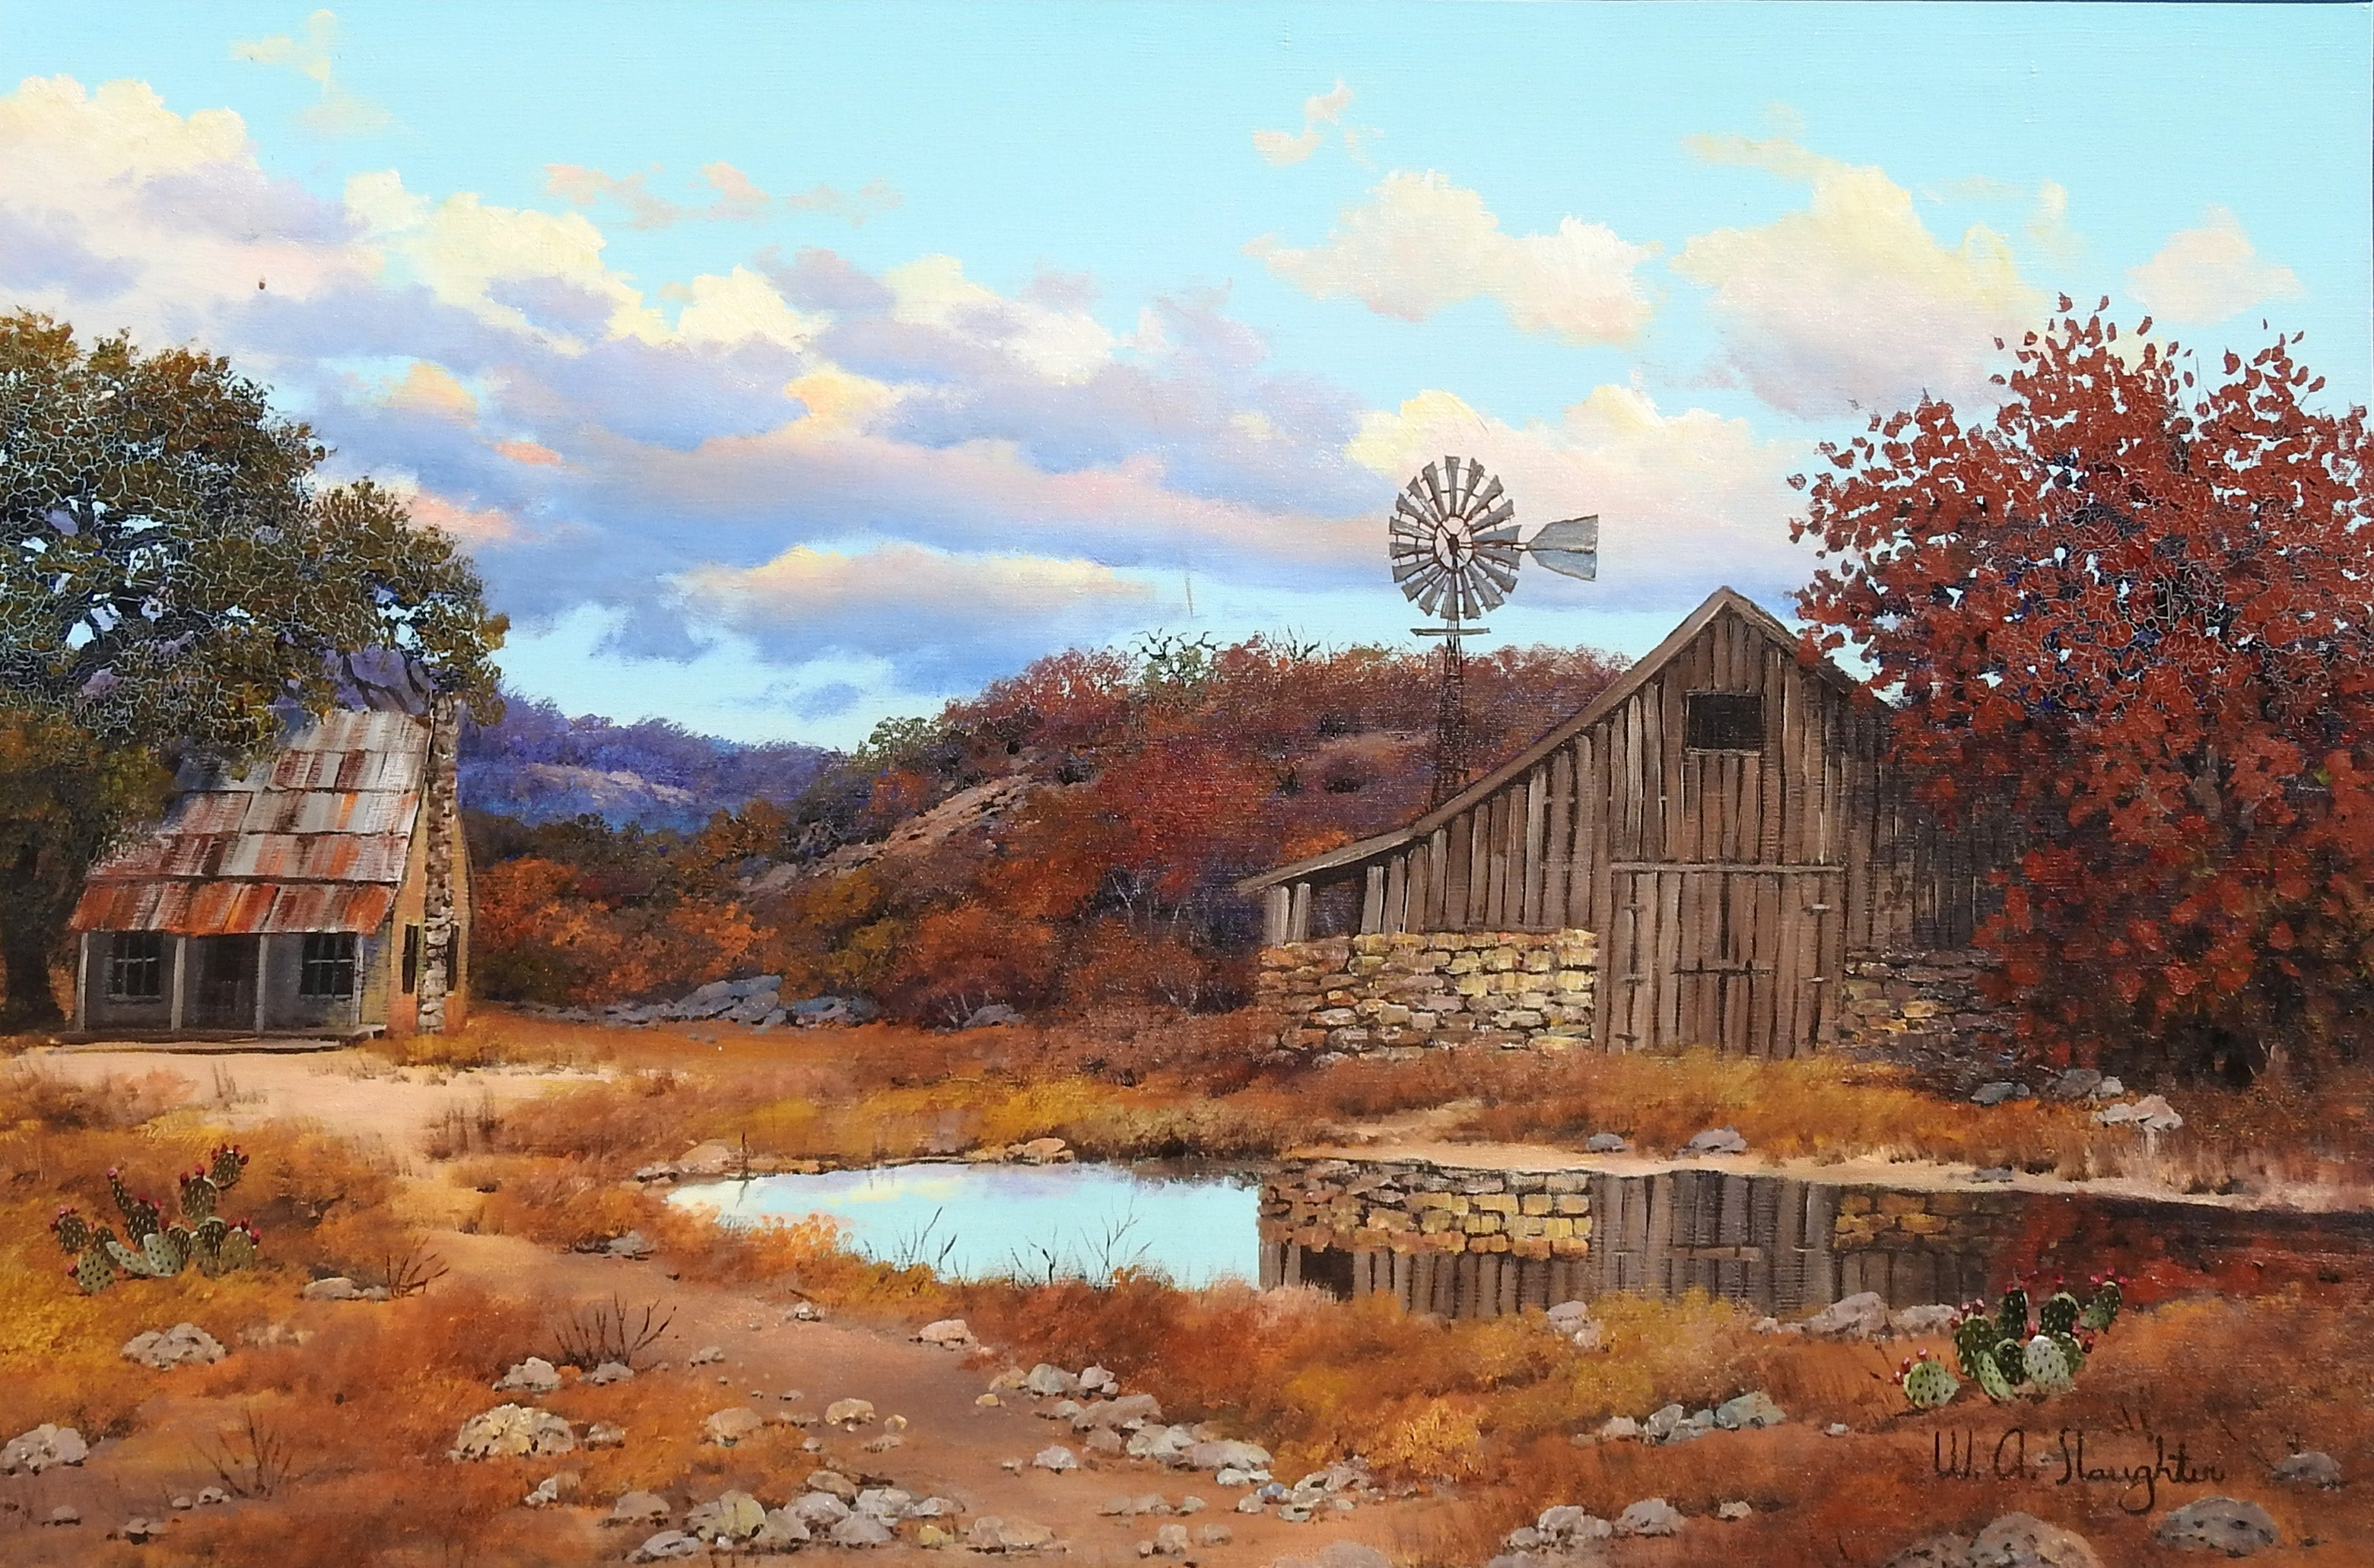 """""""Barn and Windmill"""", W.A. Slaughter, Original Landscape, Oil on Canvas, 24x36 in"""